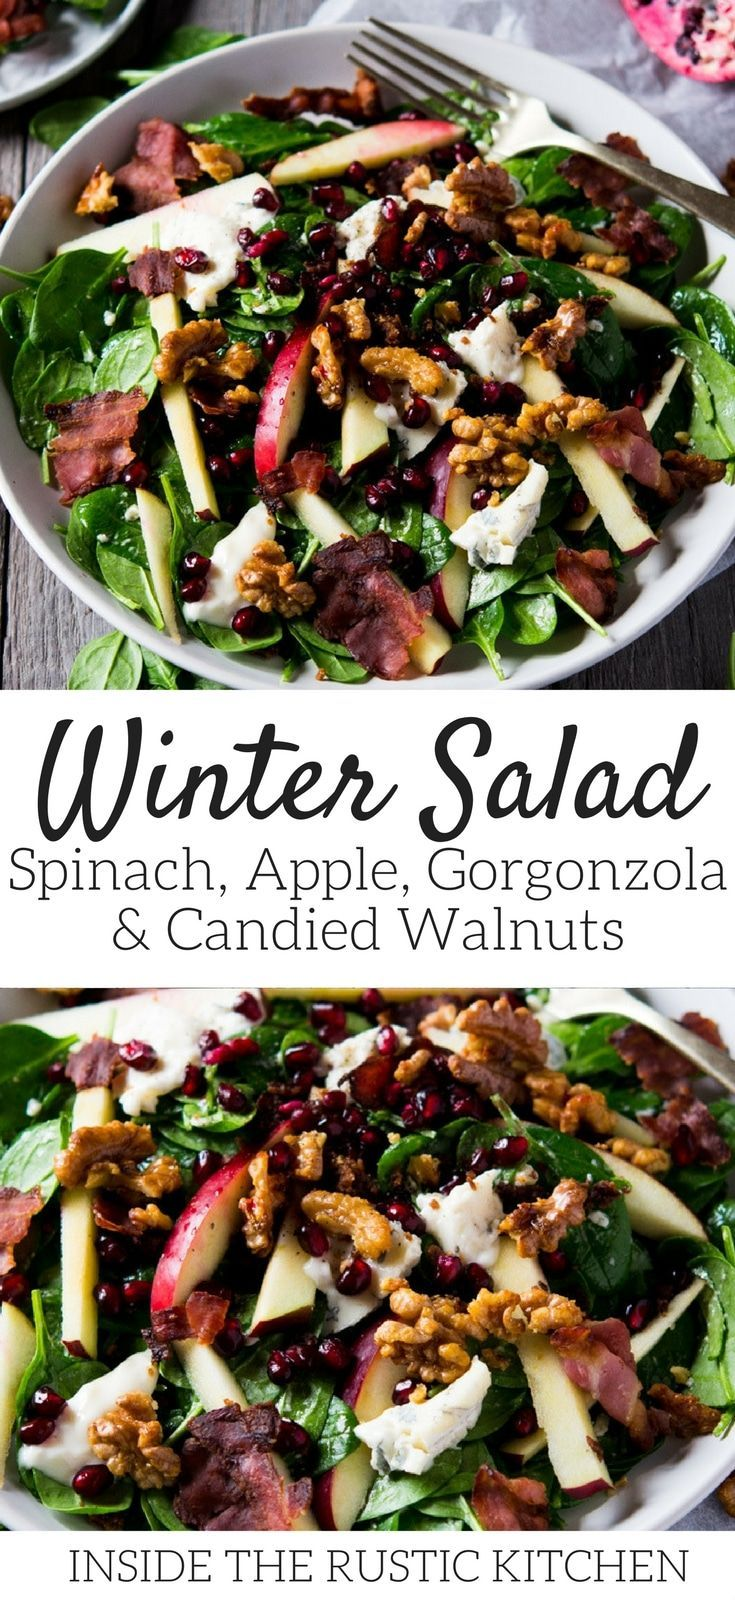 A winter salad - spinach, apple, gorgonzola and candied walnuts images